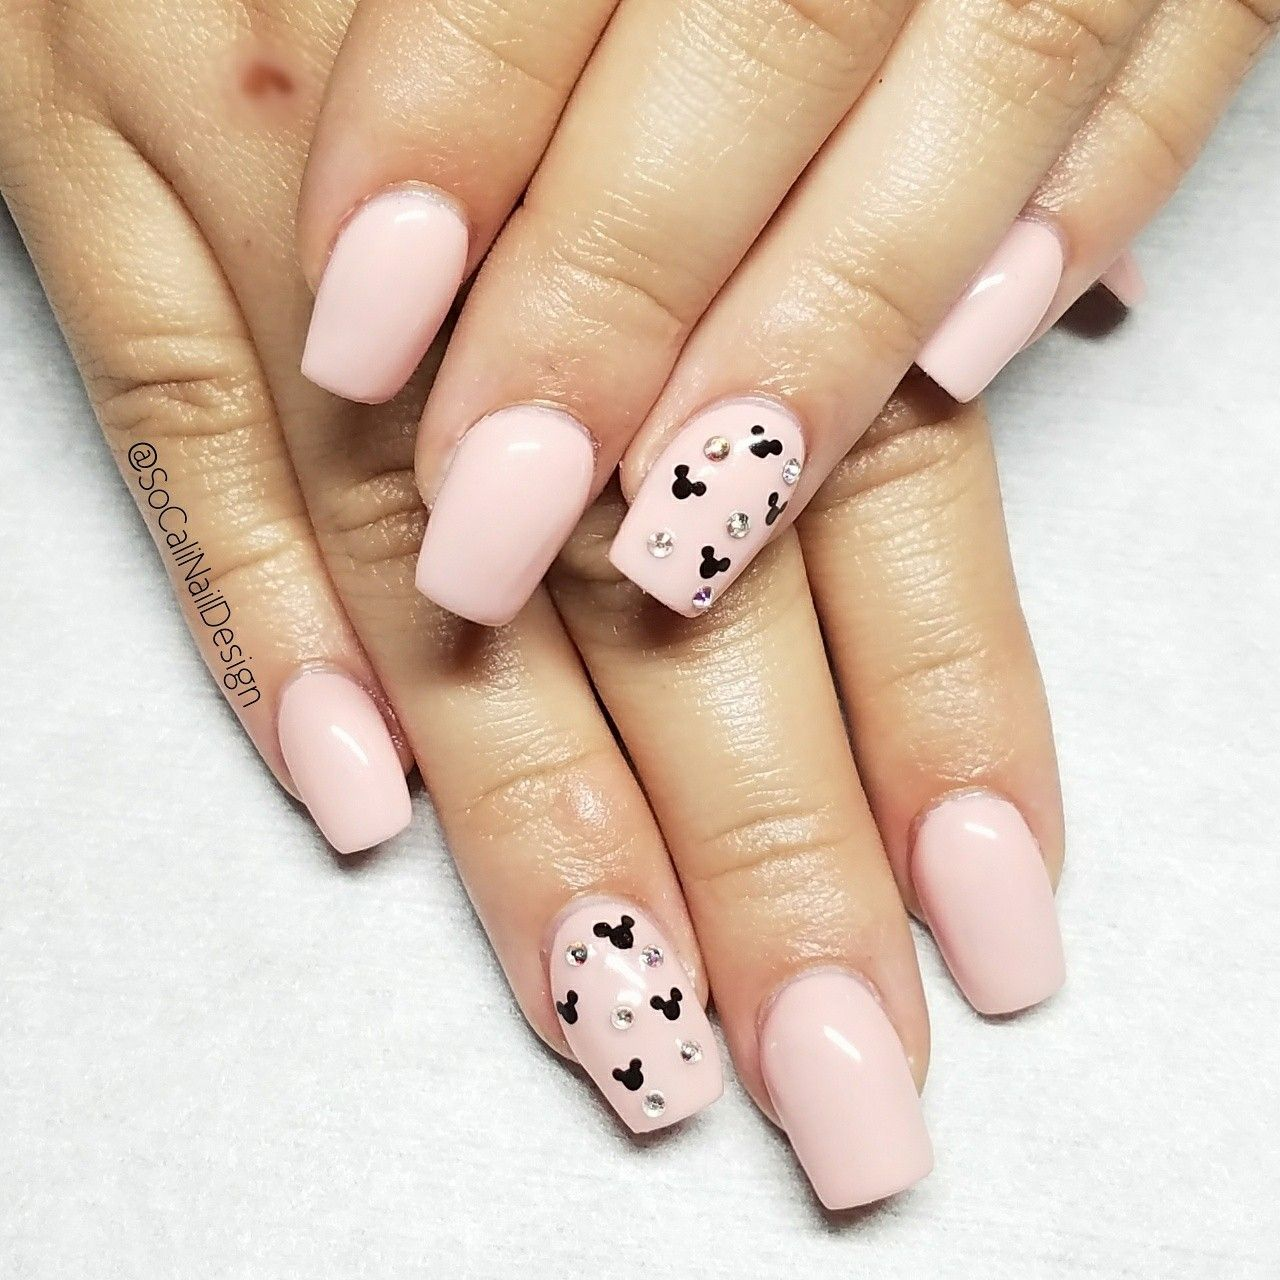 Acrylic full set and Pink Disney nail for her trip to the Happiest ...